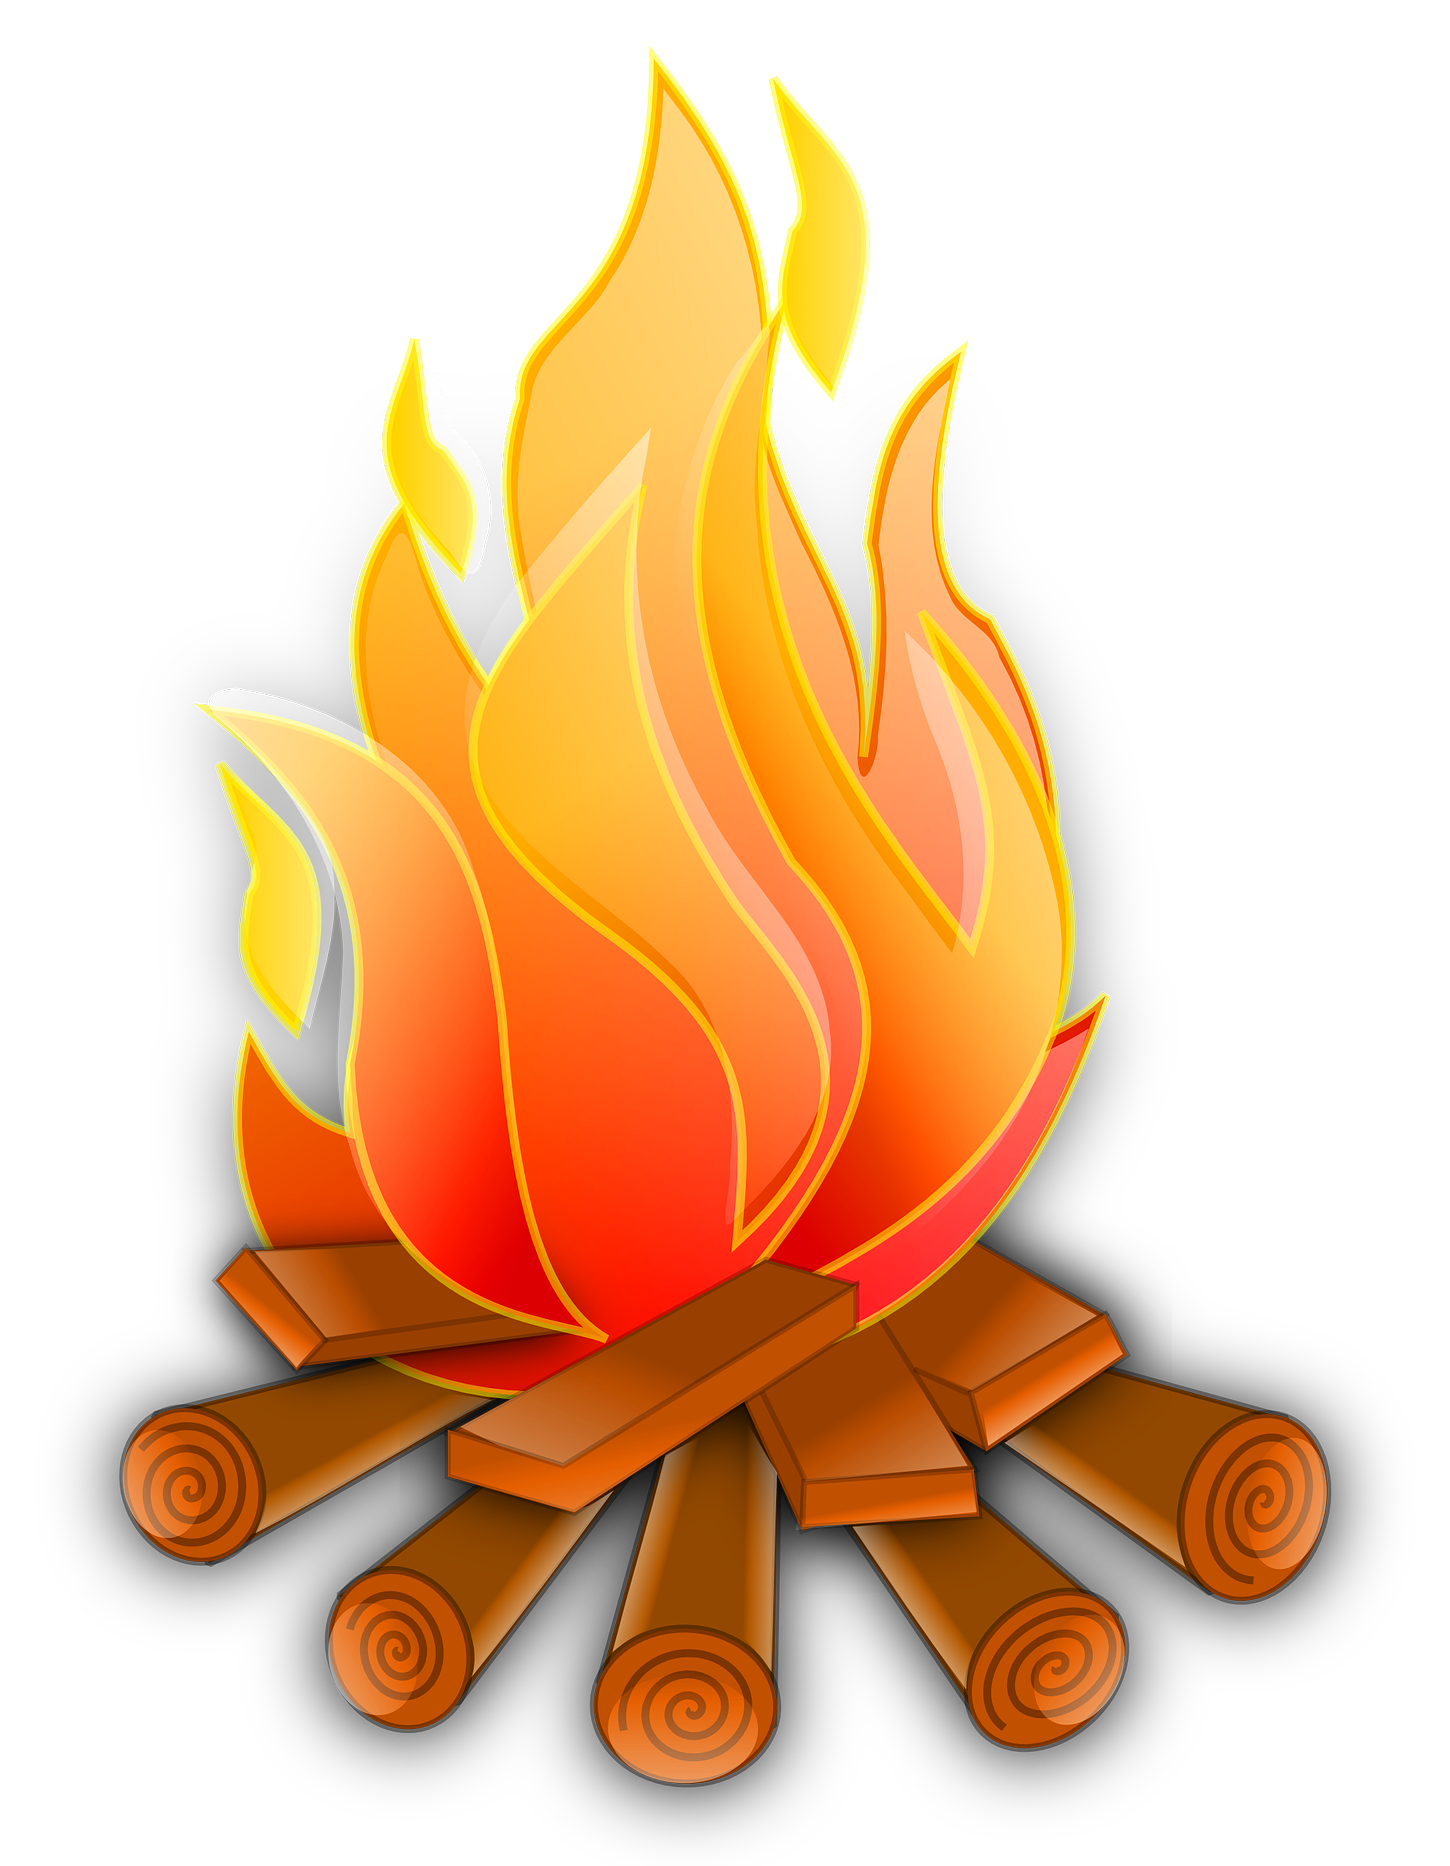 Campfire Vector PNG Image